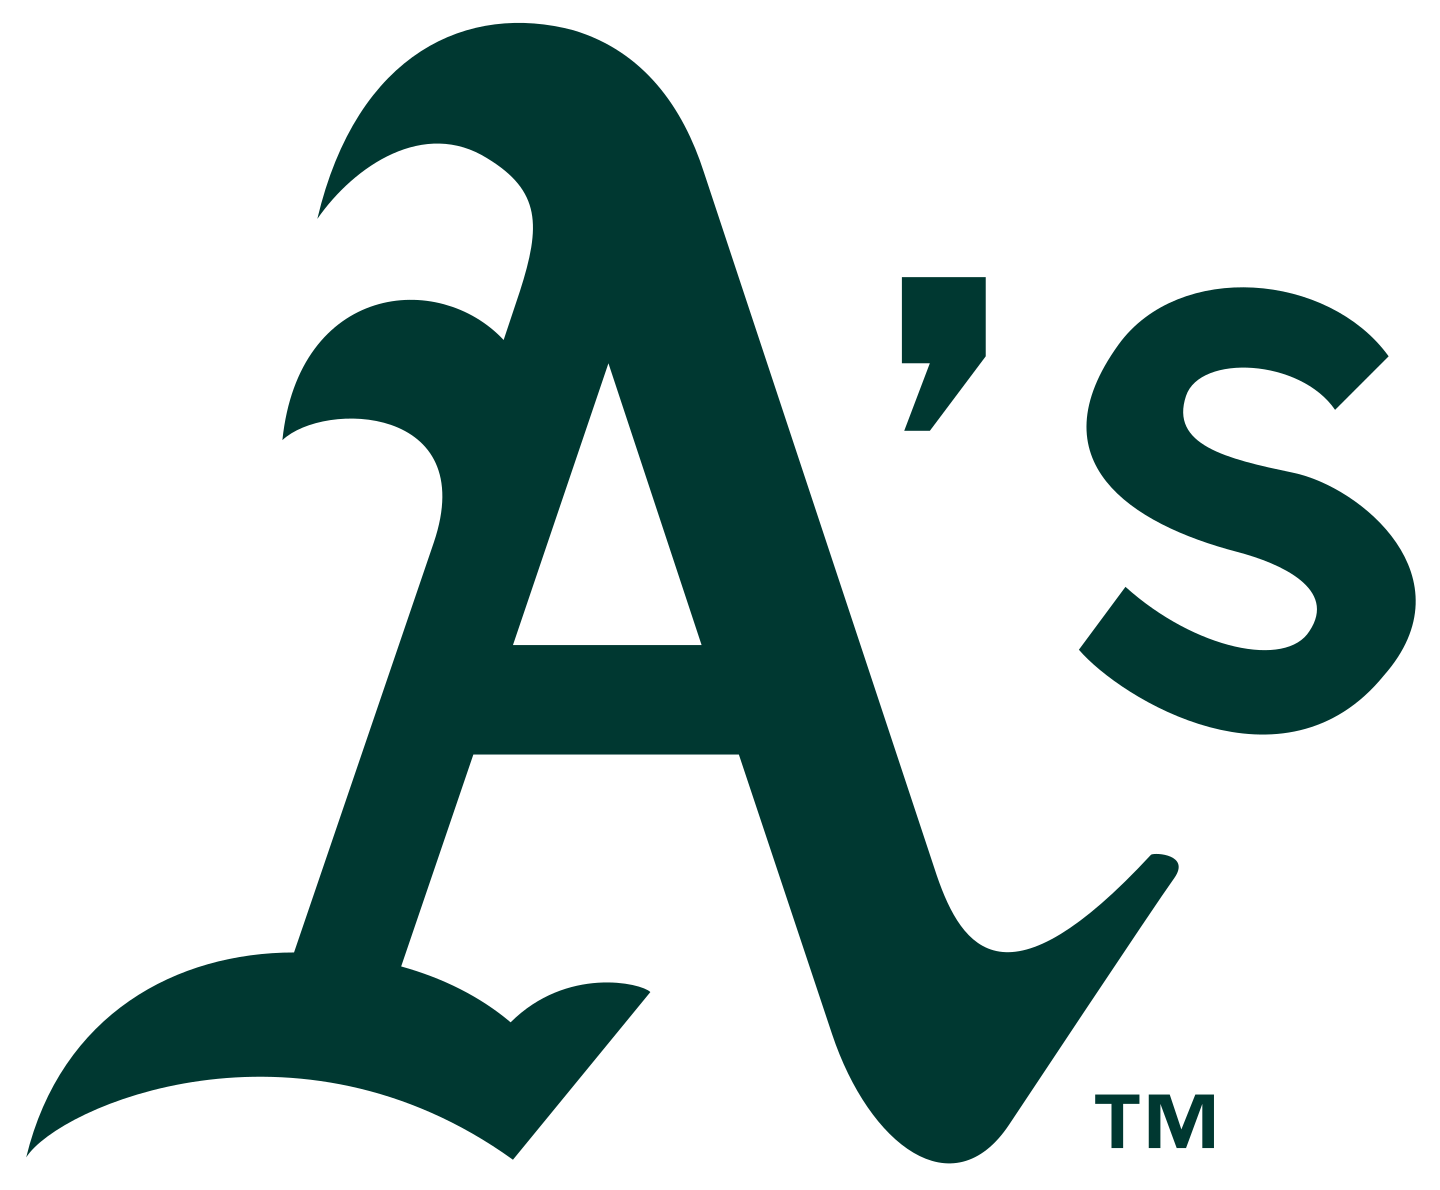 oakland athletics logo 3 - Oakland Athletics Logo